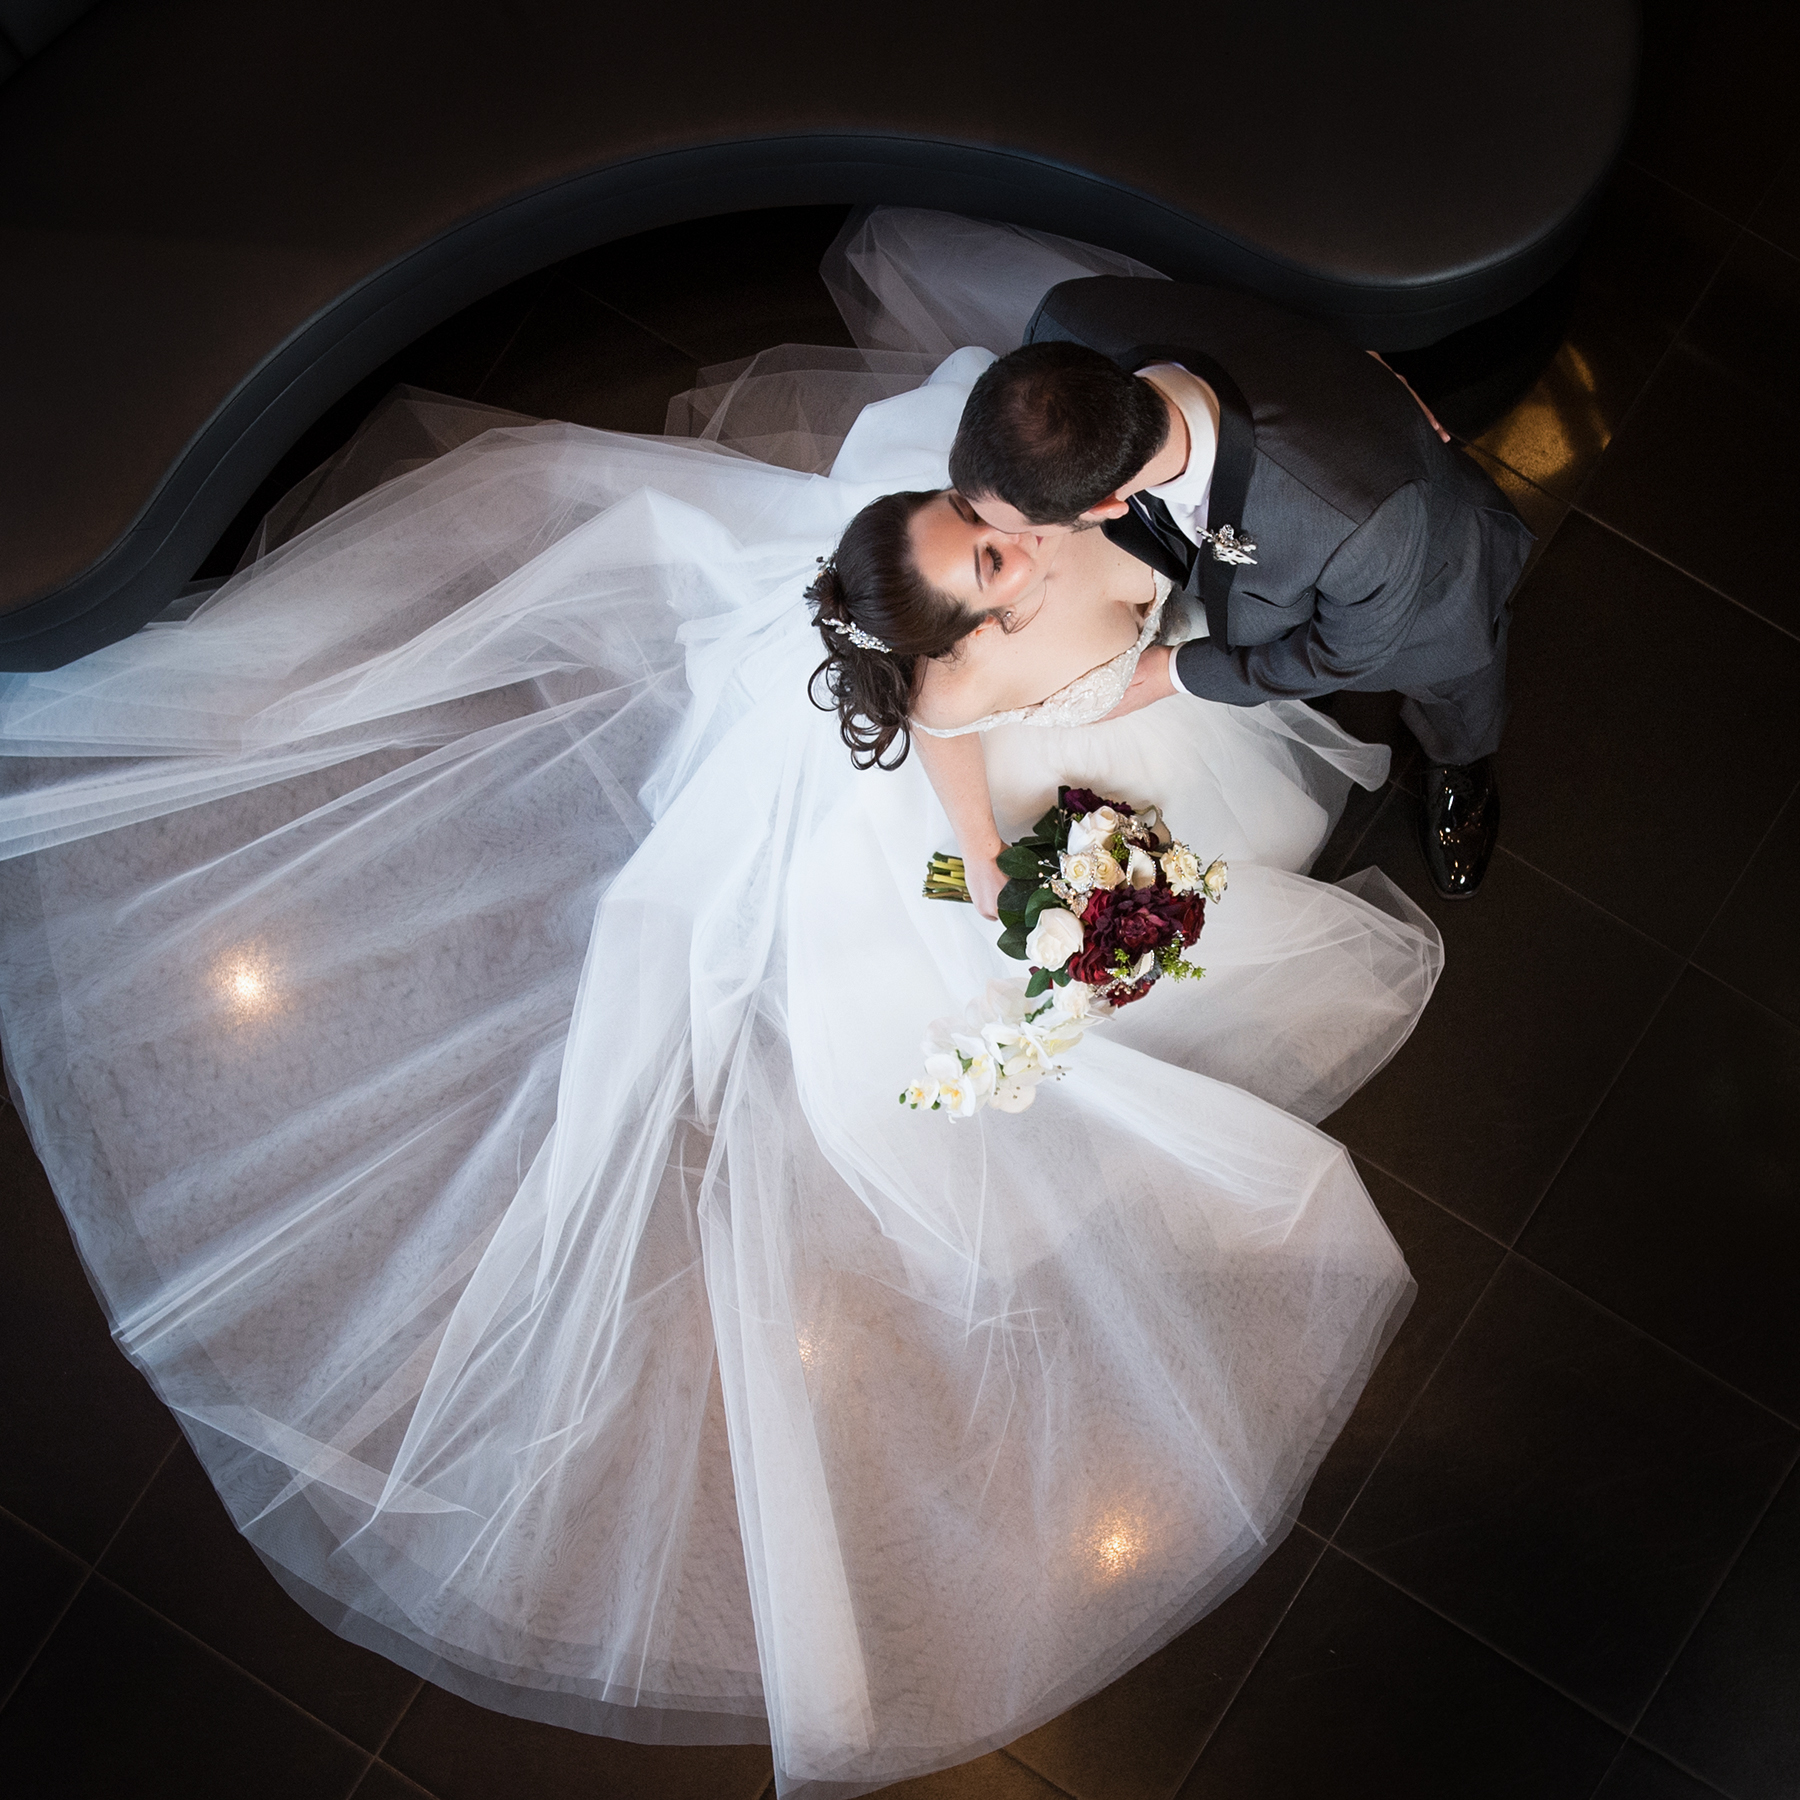 say-yes-to-the-dress-wedding-jamie-levine-photography..jpg